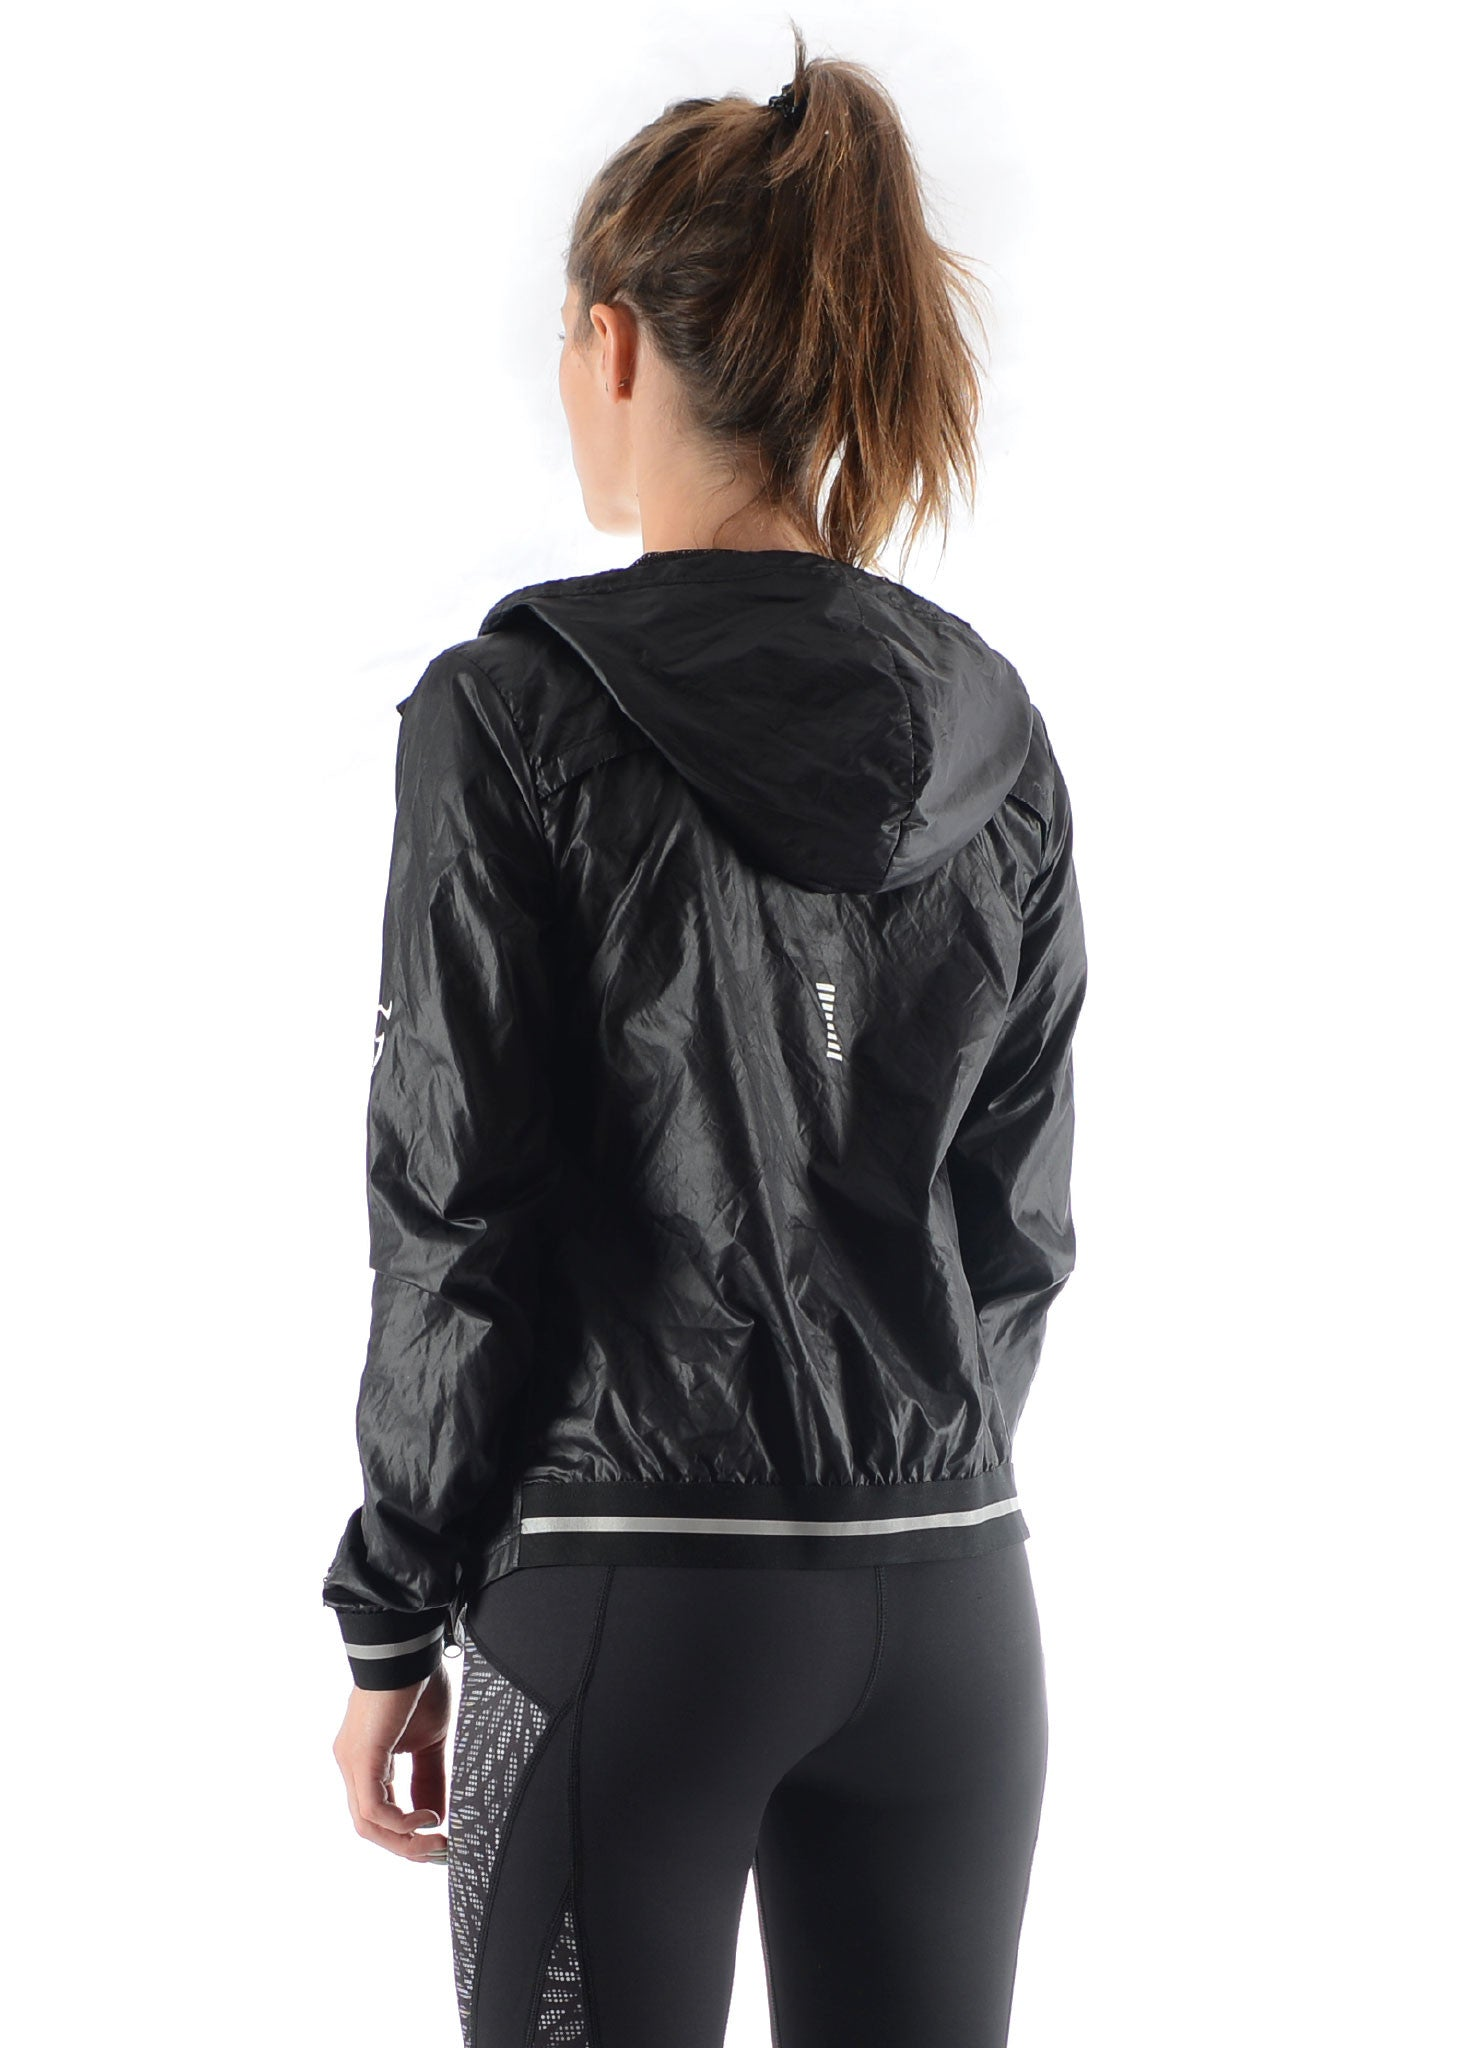 STEALTH PACKABLE SPRAY JACKET